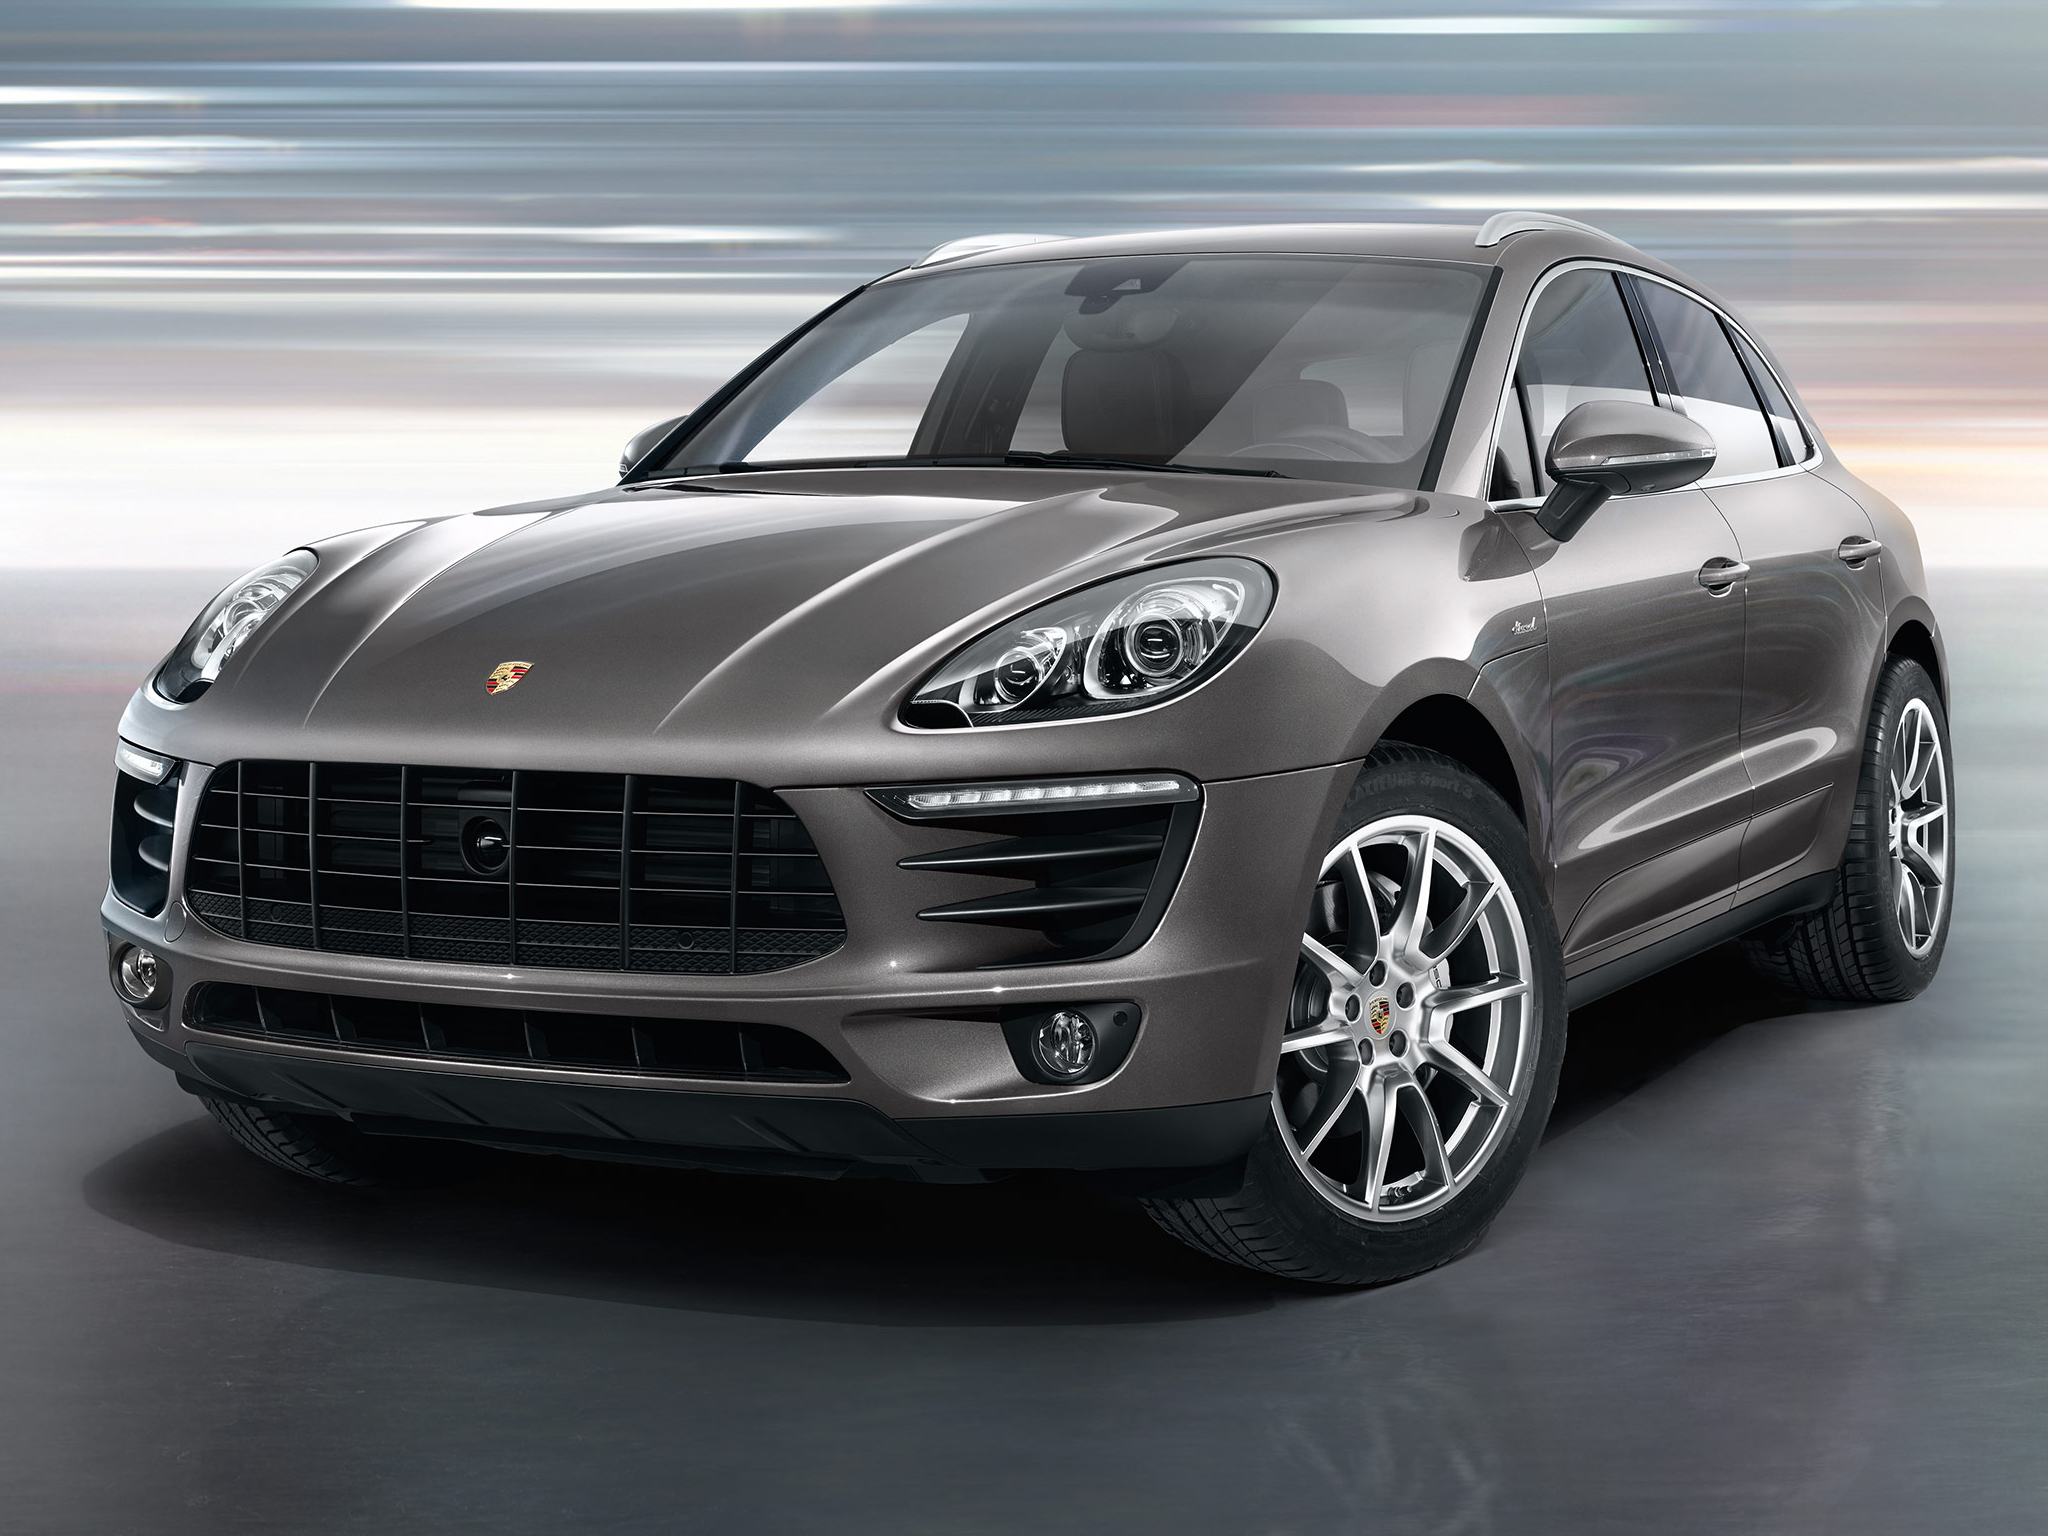 Porsche Macan V6 Diesel Model Coming To America In 2015 Autoevolution